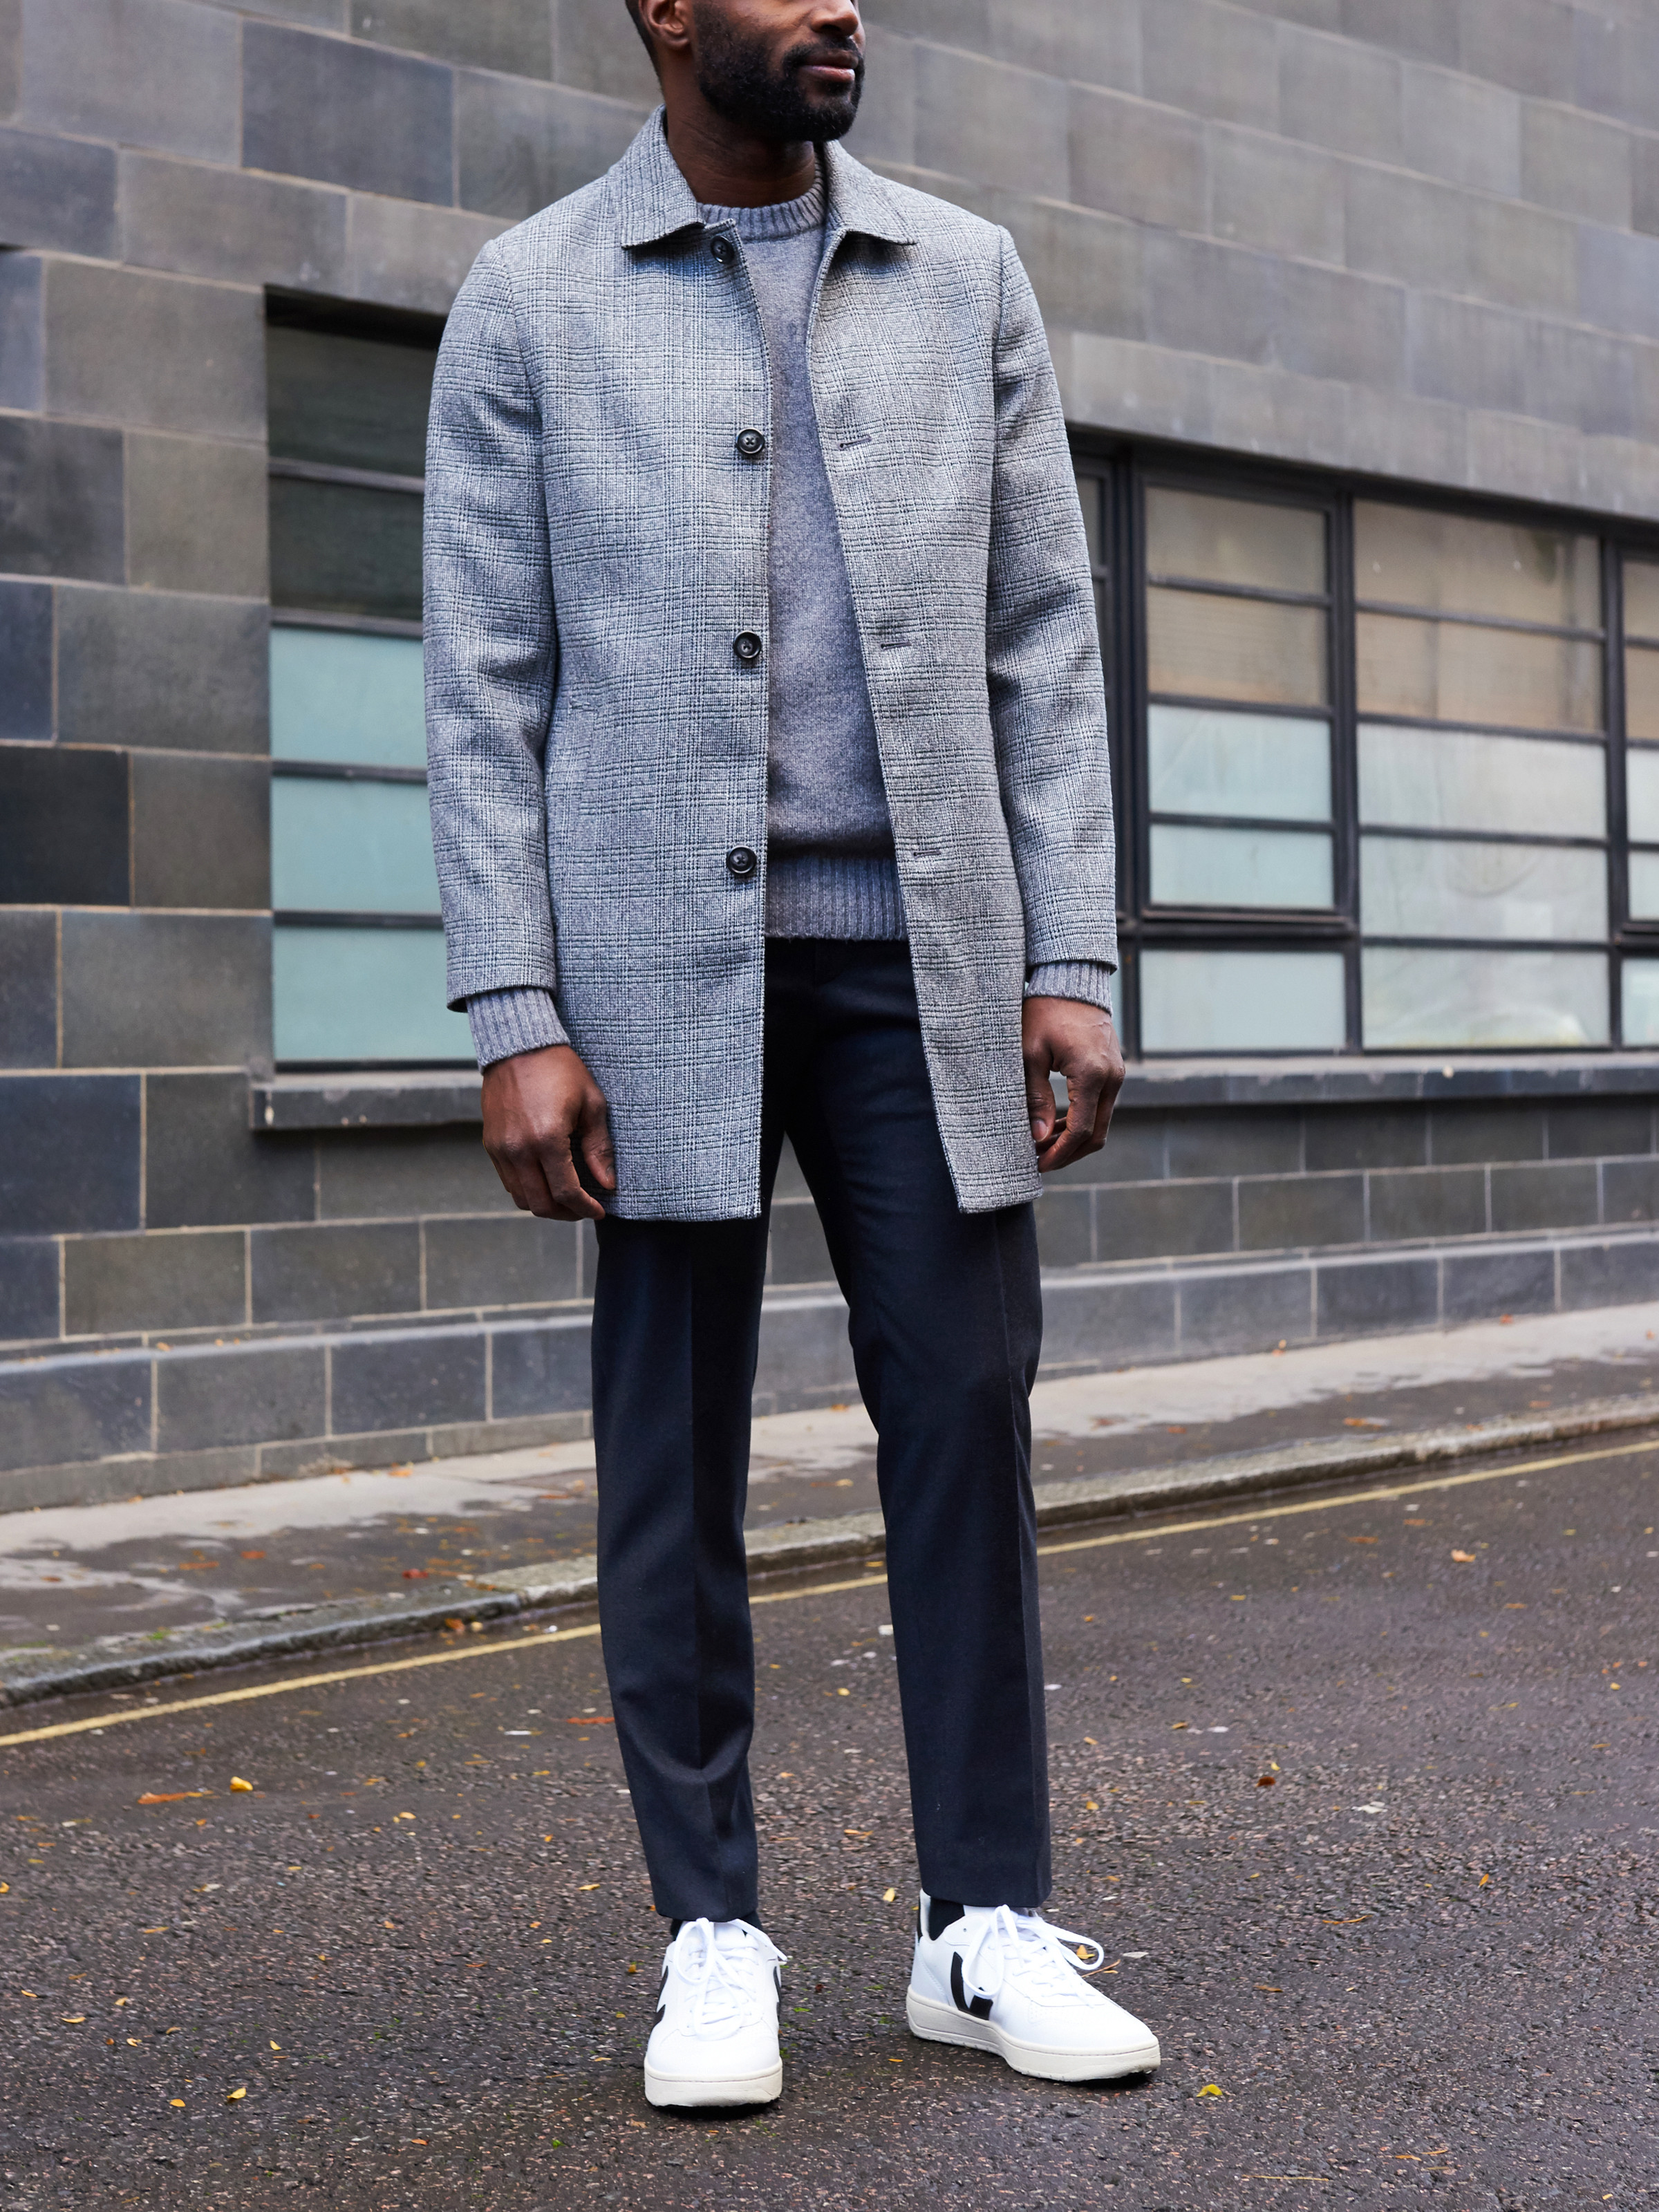 Men's outfit idea for 2021 with grey single-breasted overcoat, gray crew neck knitted sweater, navy dress pants, white sneakers. Suitable for fall and winter.